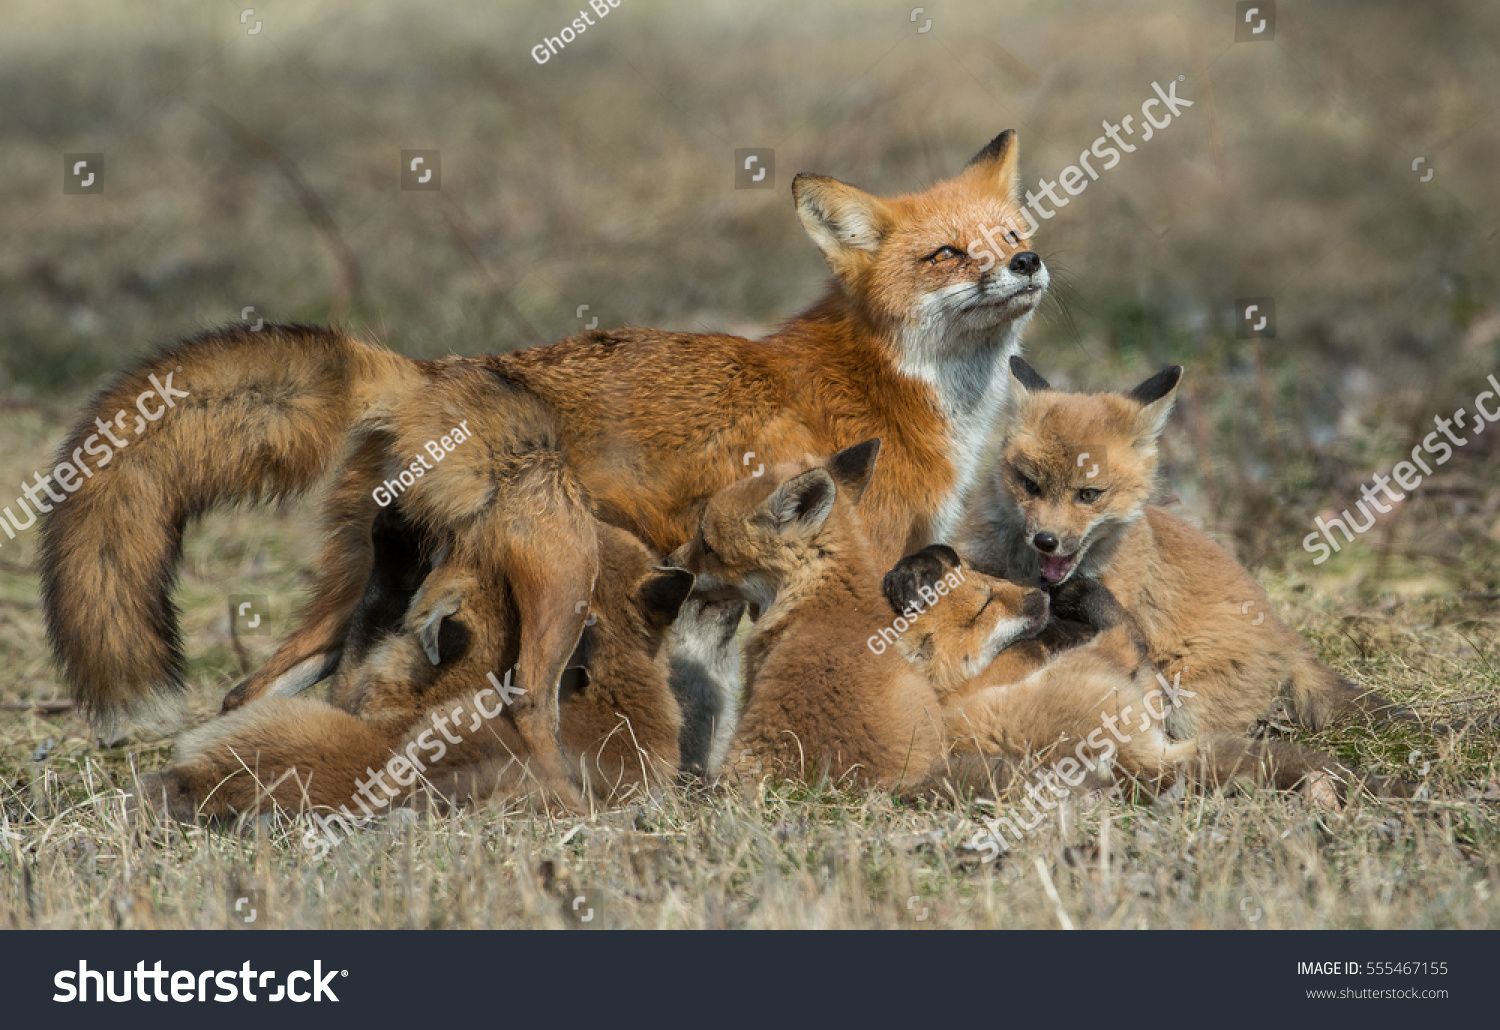 This Wild Red Fox Was Just Too Tame So She Moves Into Her Forever ...